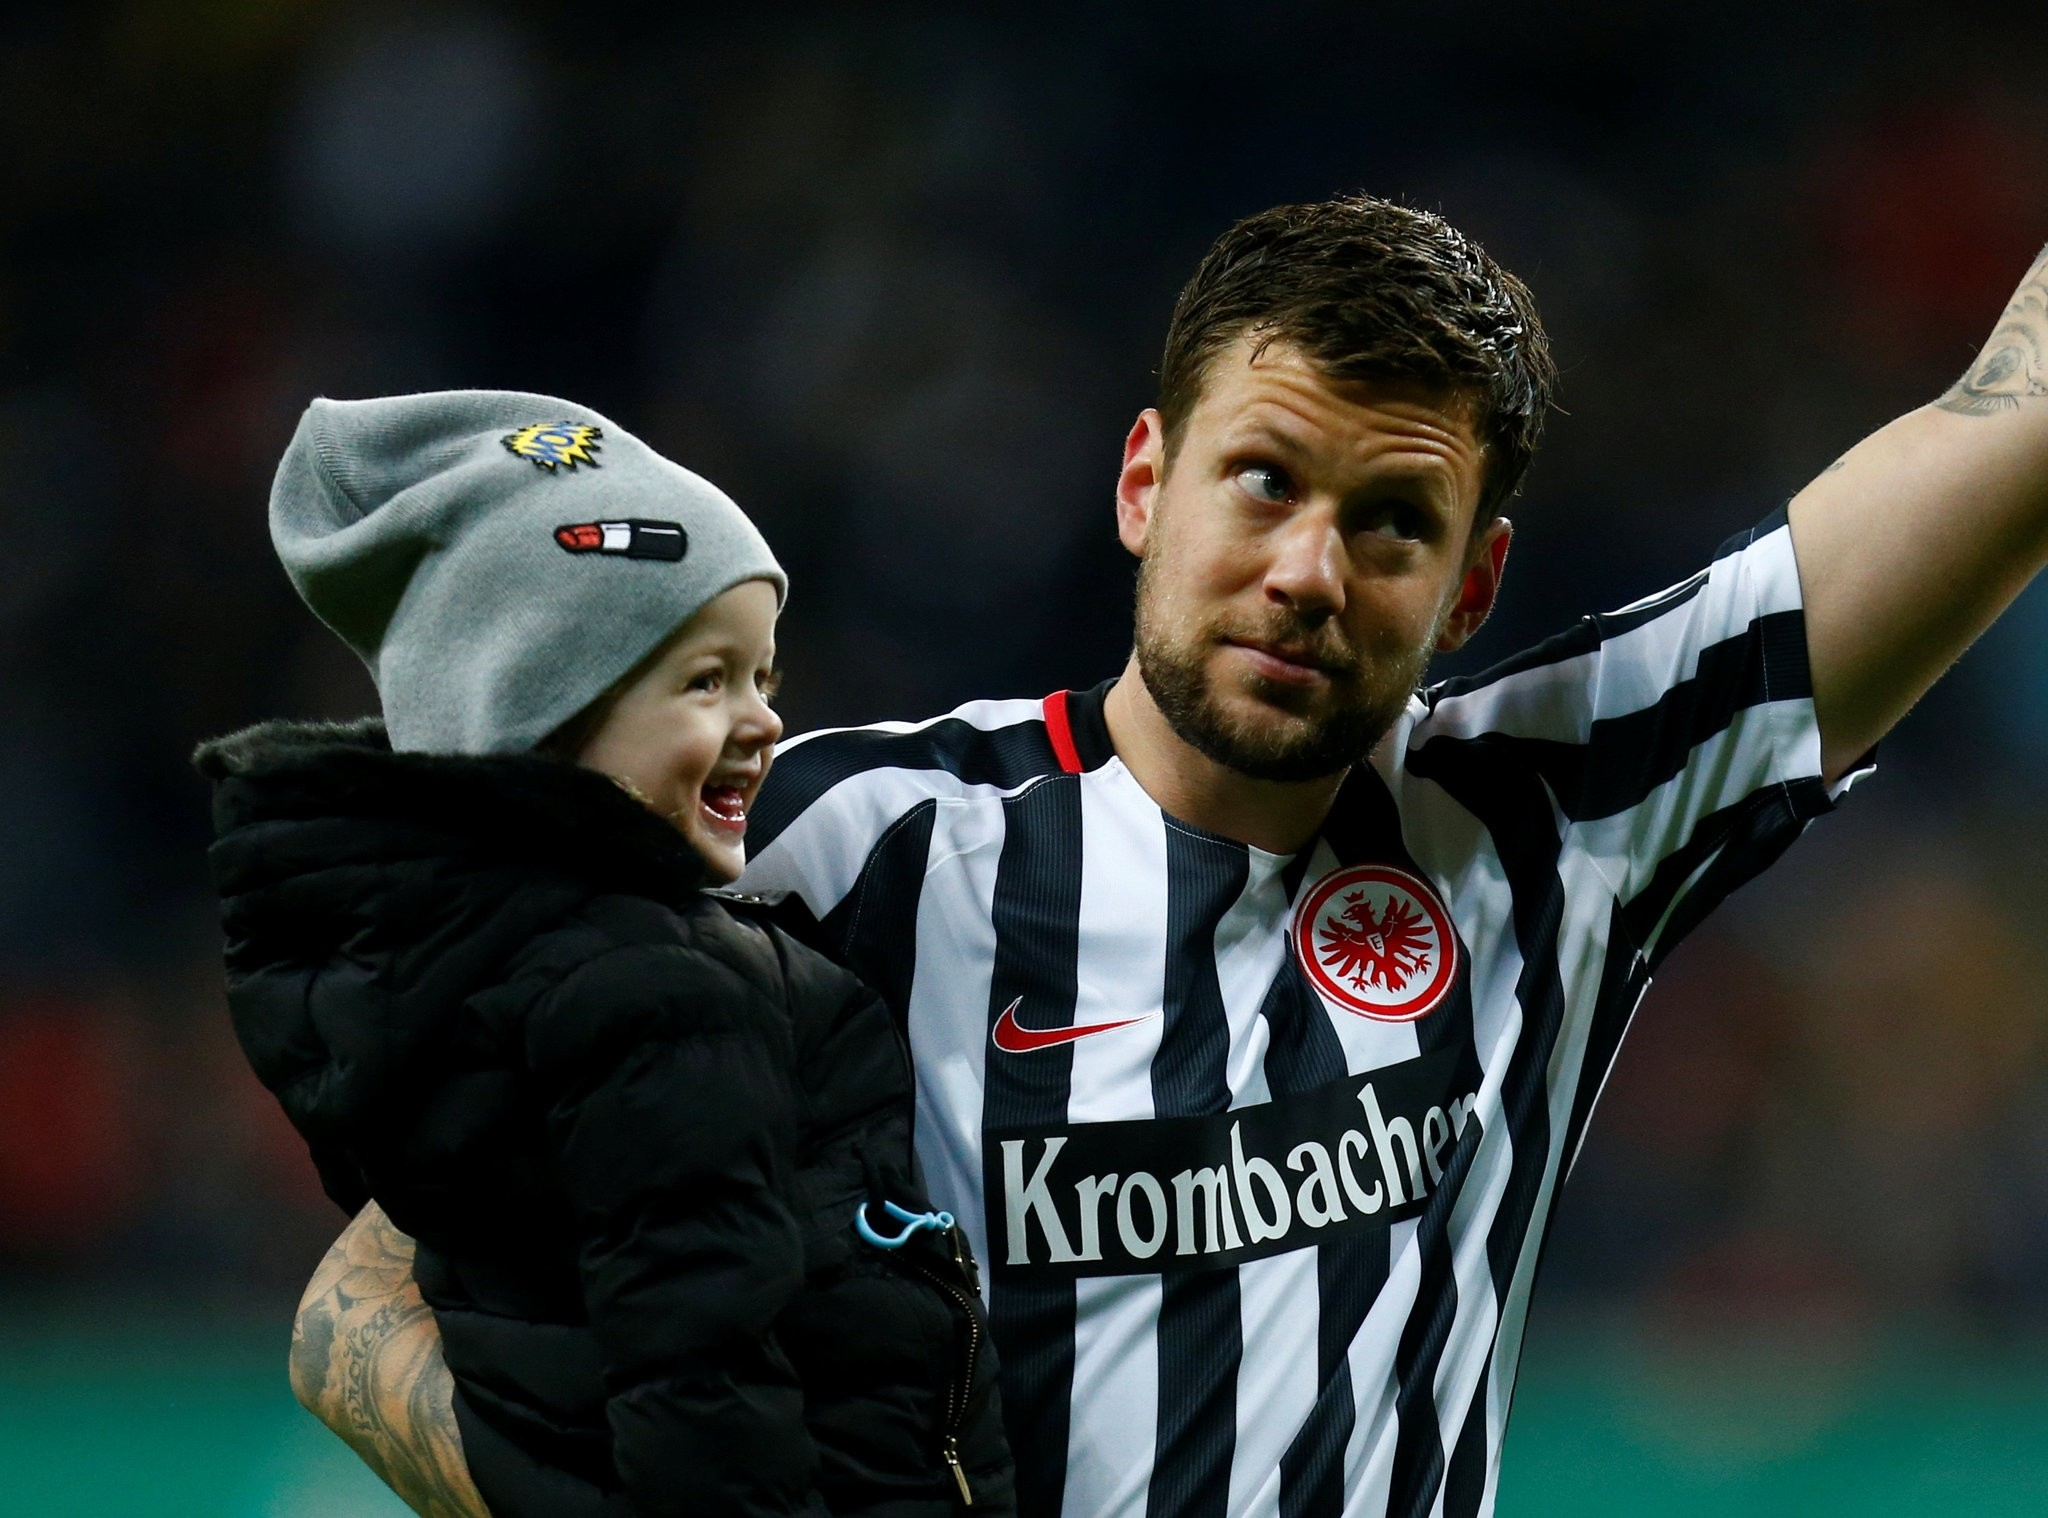 Eintracht's Marco Russ with his daughter Vida. (REUTERS Photo)